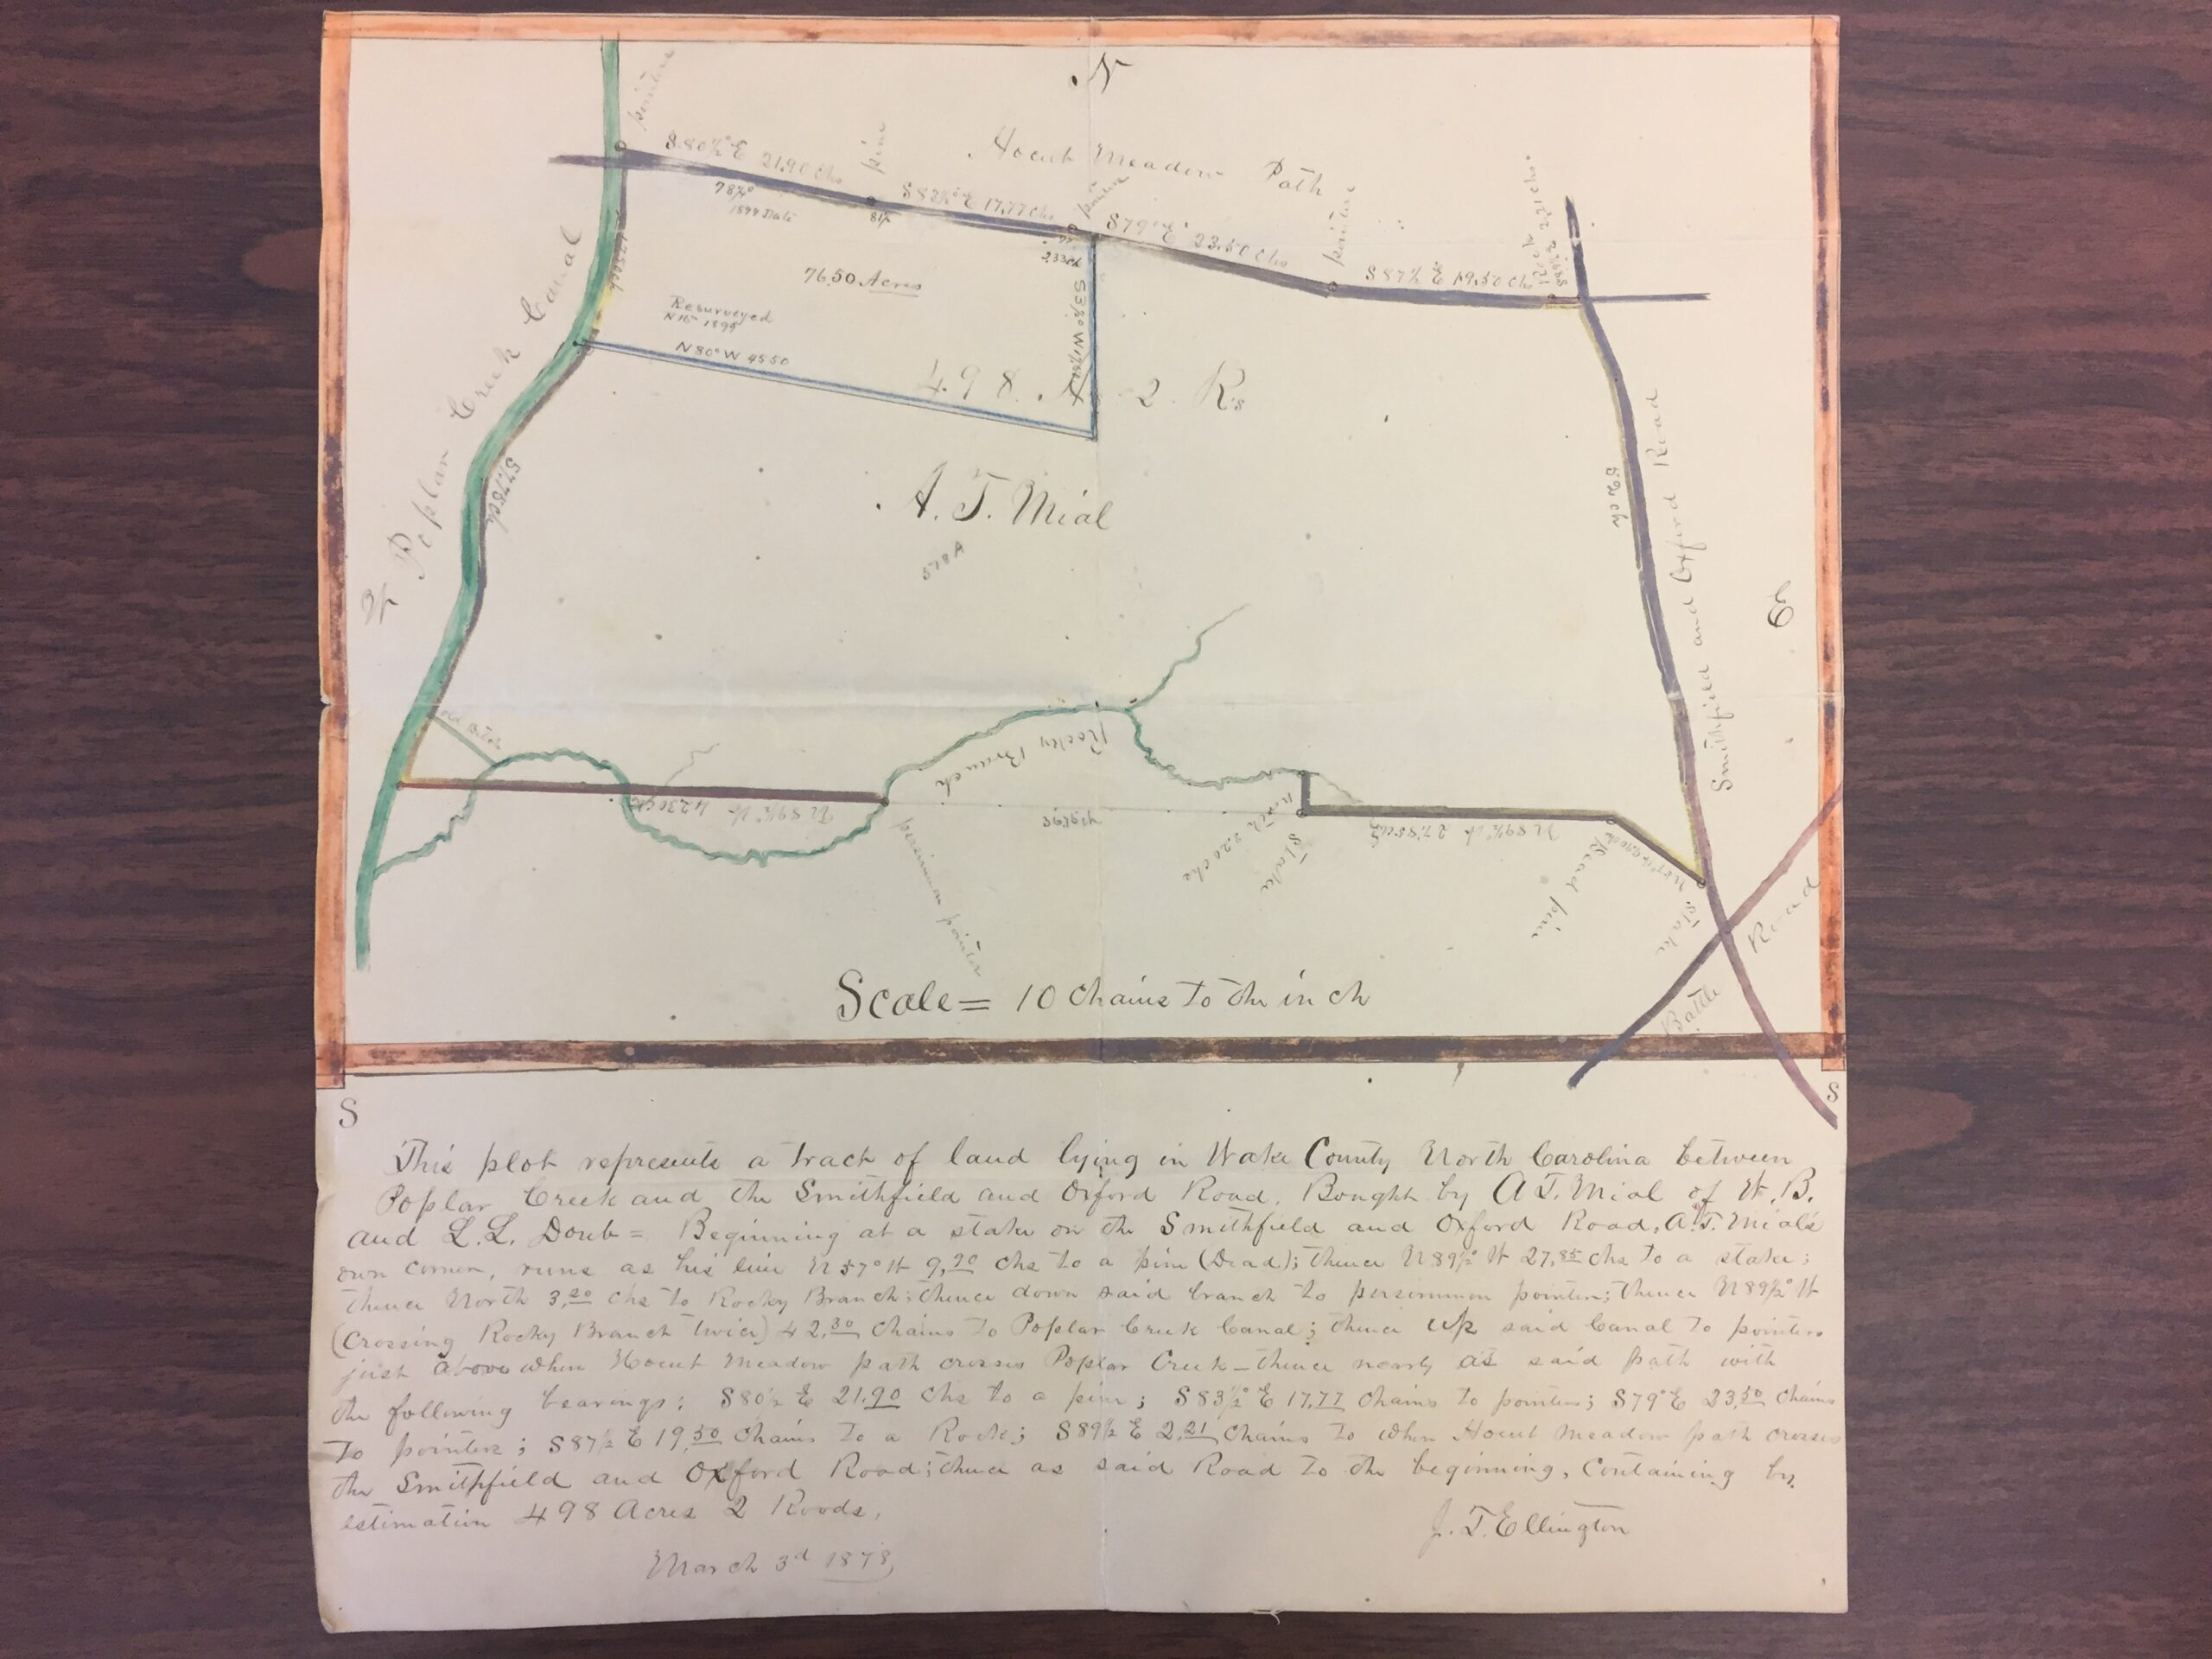 Land plat for portion of Mail farmlands_1878